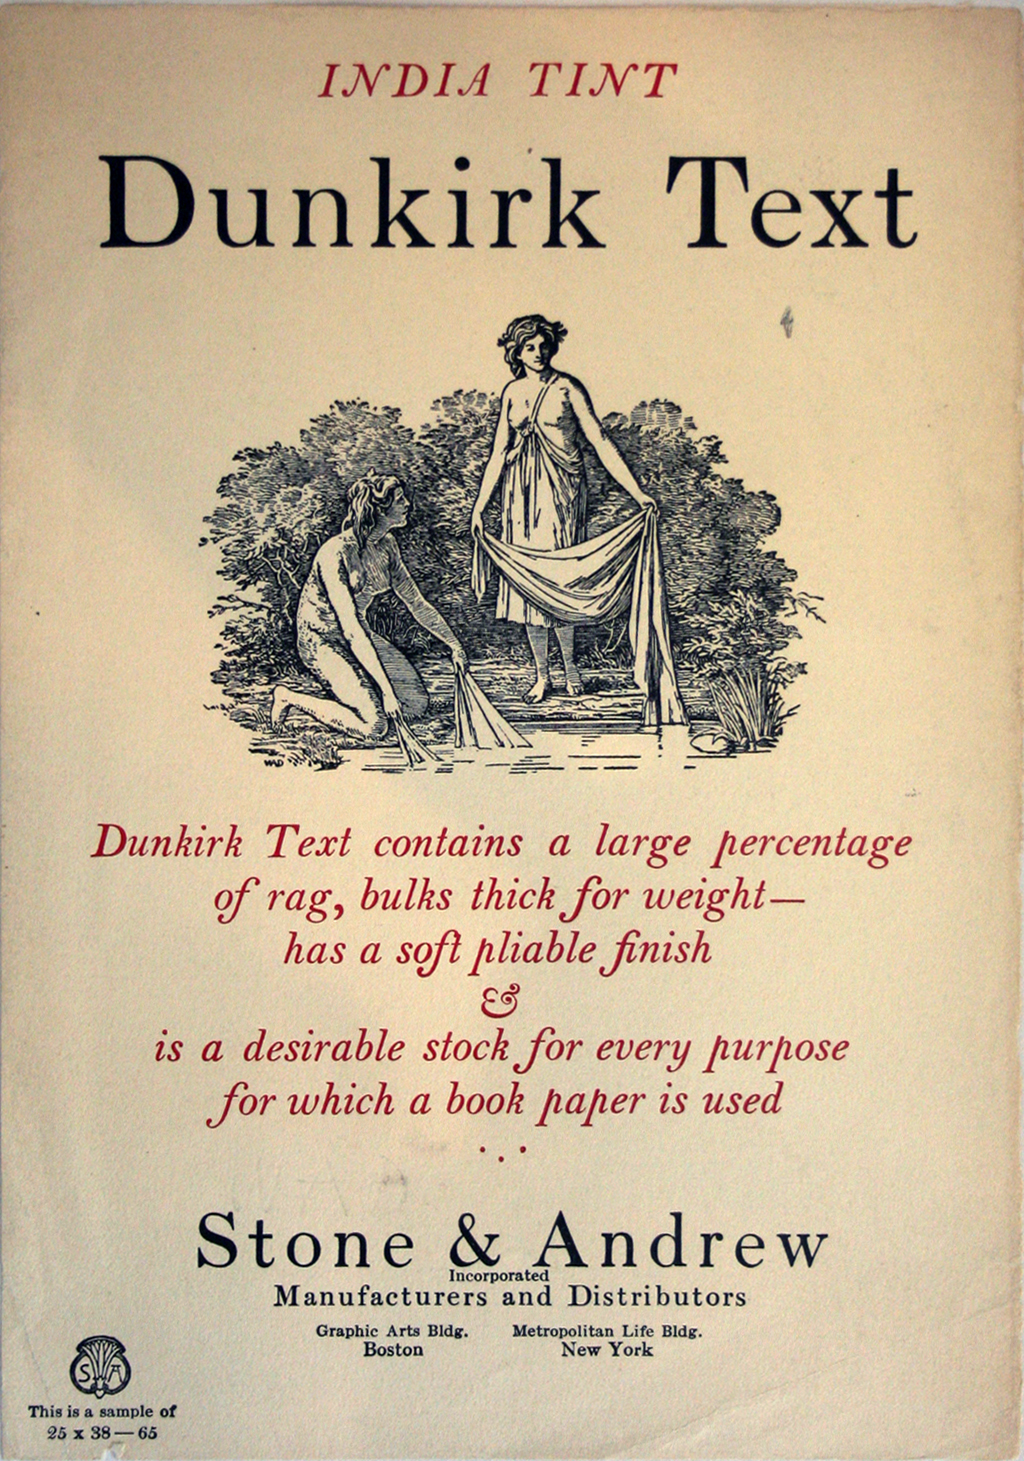 India Text Dunkirk from Stone & Andrew